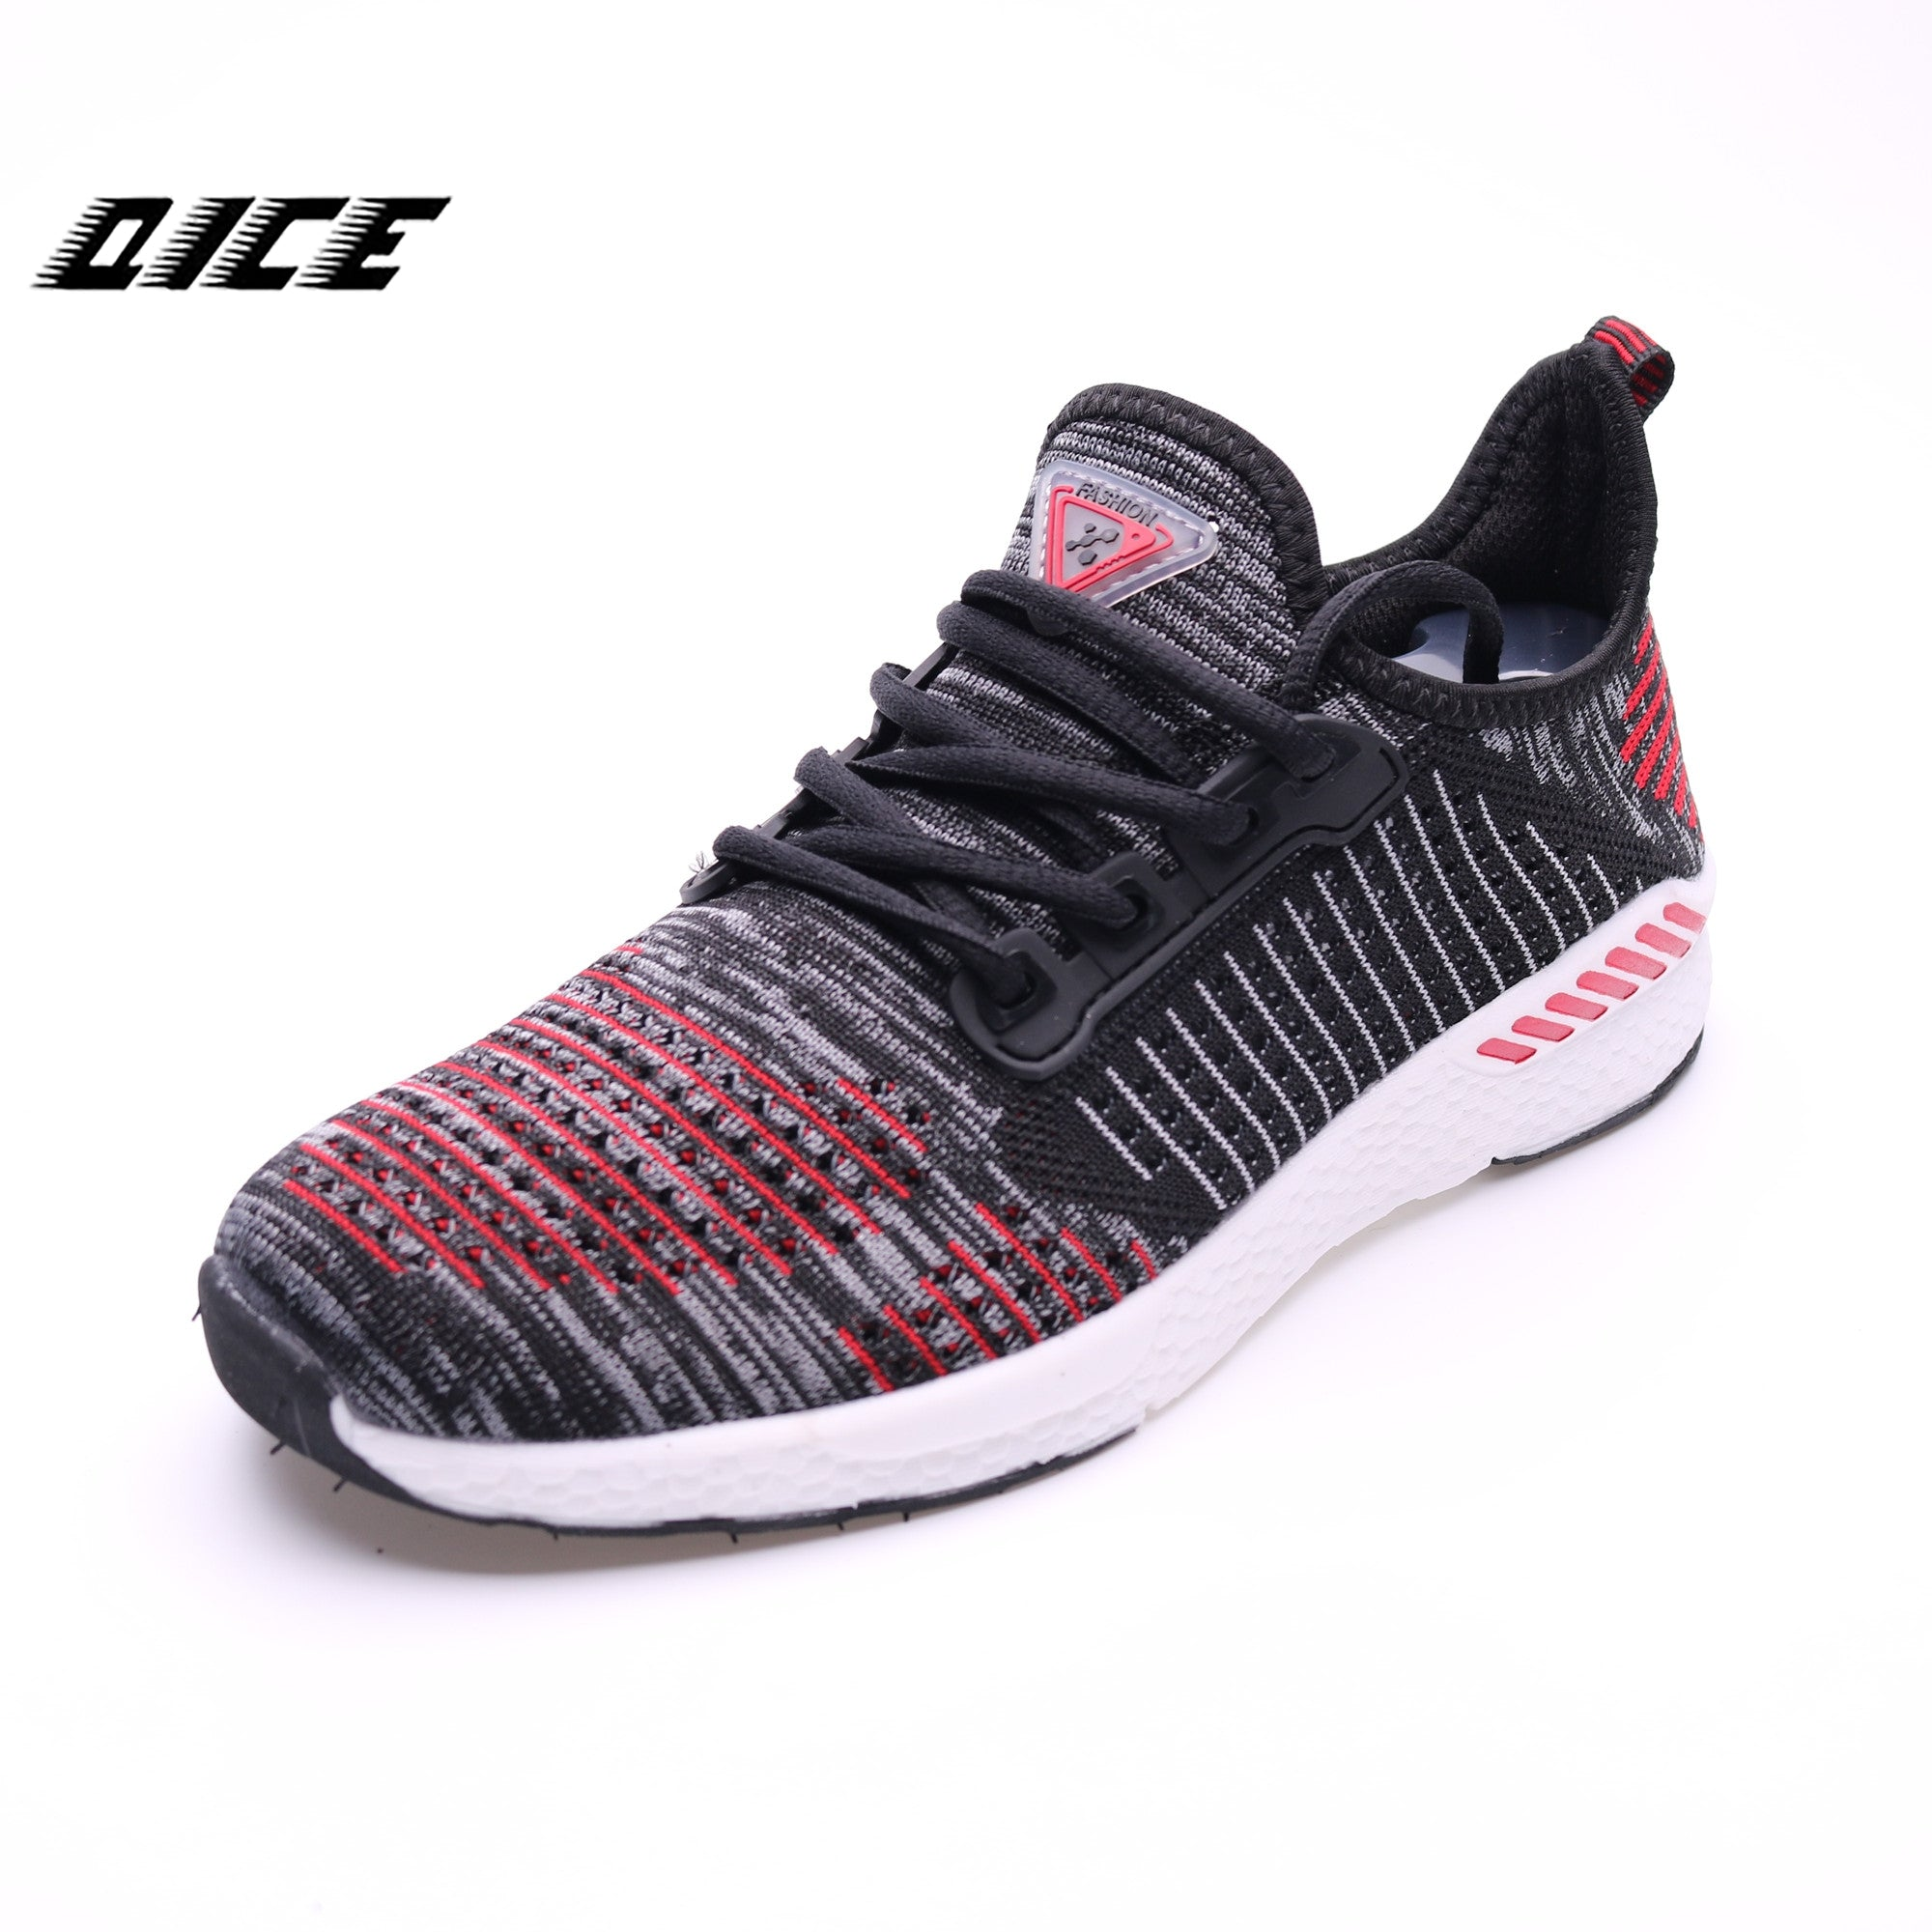 Find the Best Running Shoes for Men on Shoptug.com c2befdd08823